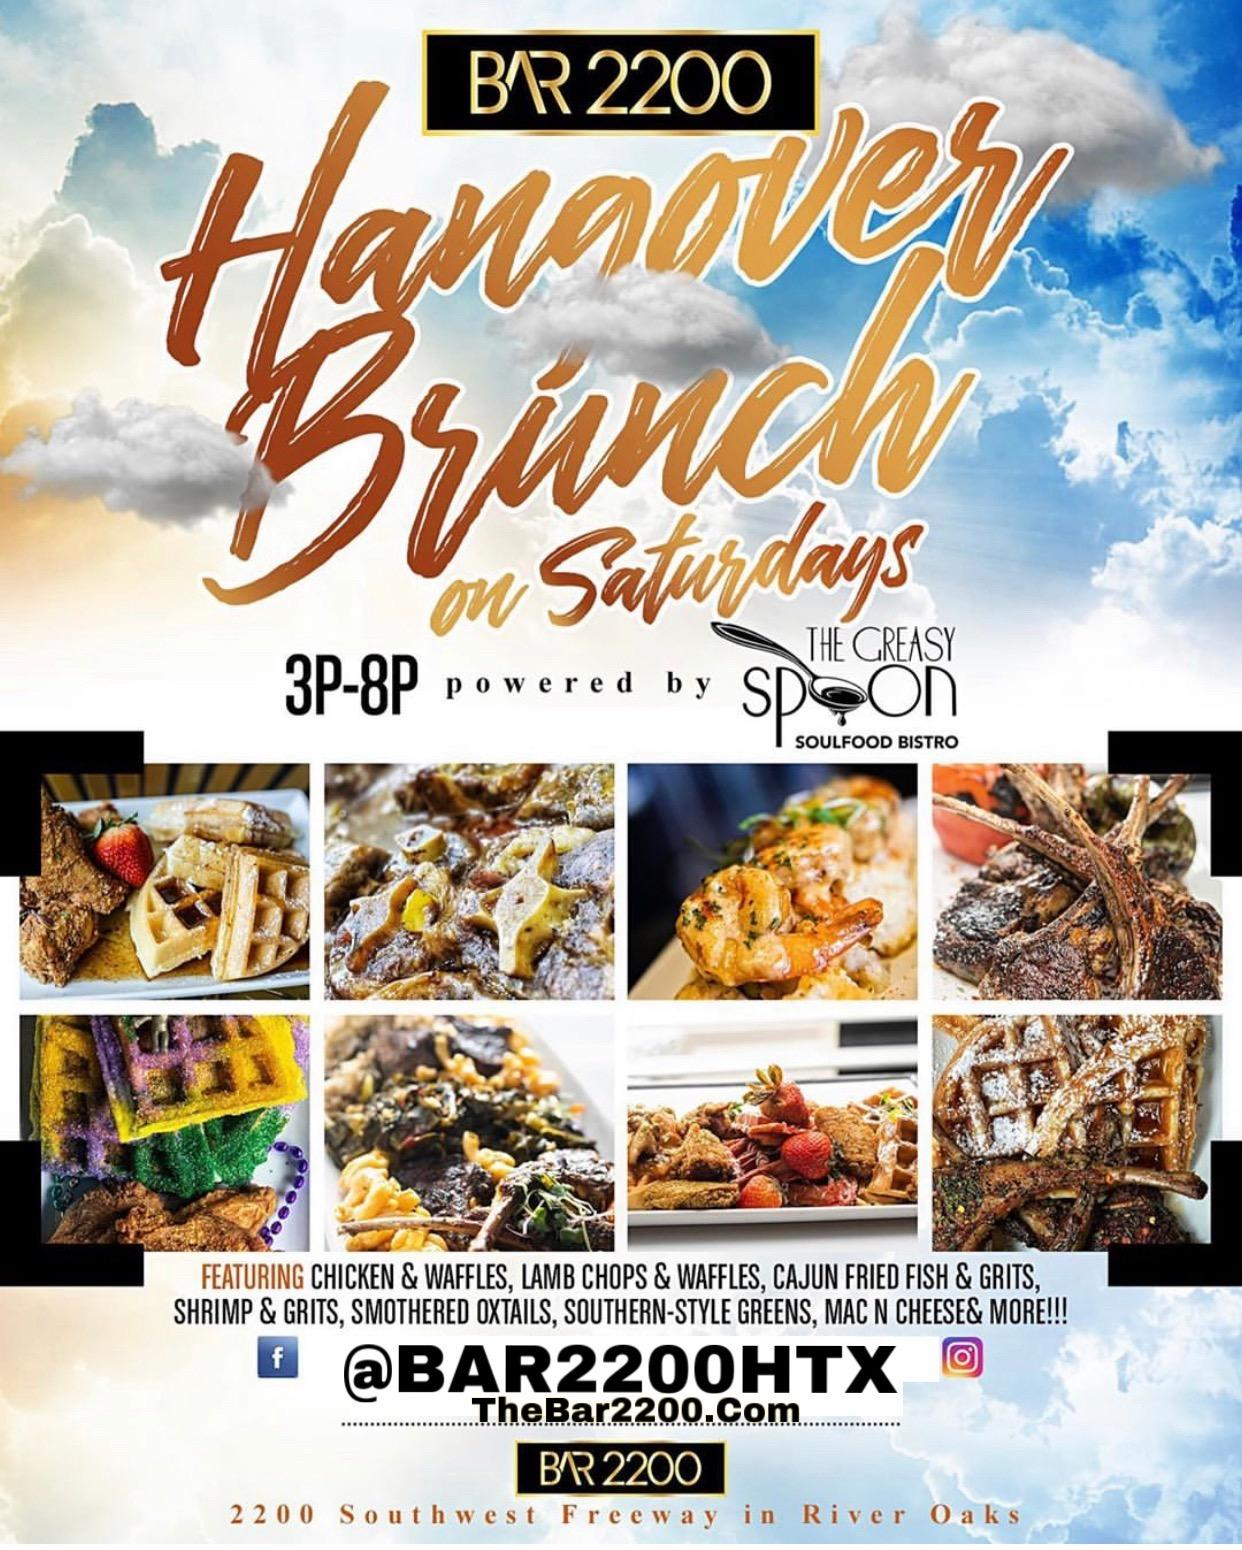 SATURDAY BRUNCH @ BAR 2200 IN RIVER OAKS | BRUNCH DAY PARTY 3p-8p | NIGHT PARTY 8pm-2am | HAPPY HOUR 5p-9p |FREE ENTRY ALL DAY | FOR BOTTLE SERVICE OR MORE INFO TEXT 832.338.3829 OR @Bar2200htx ON INSTAGRAM